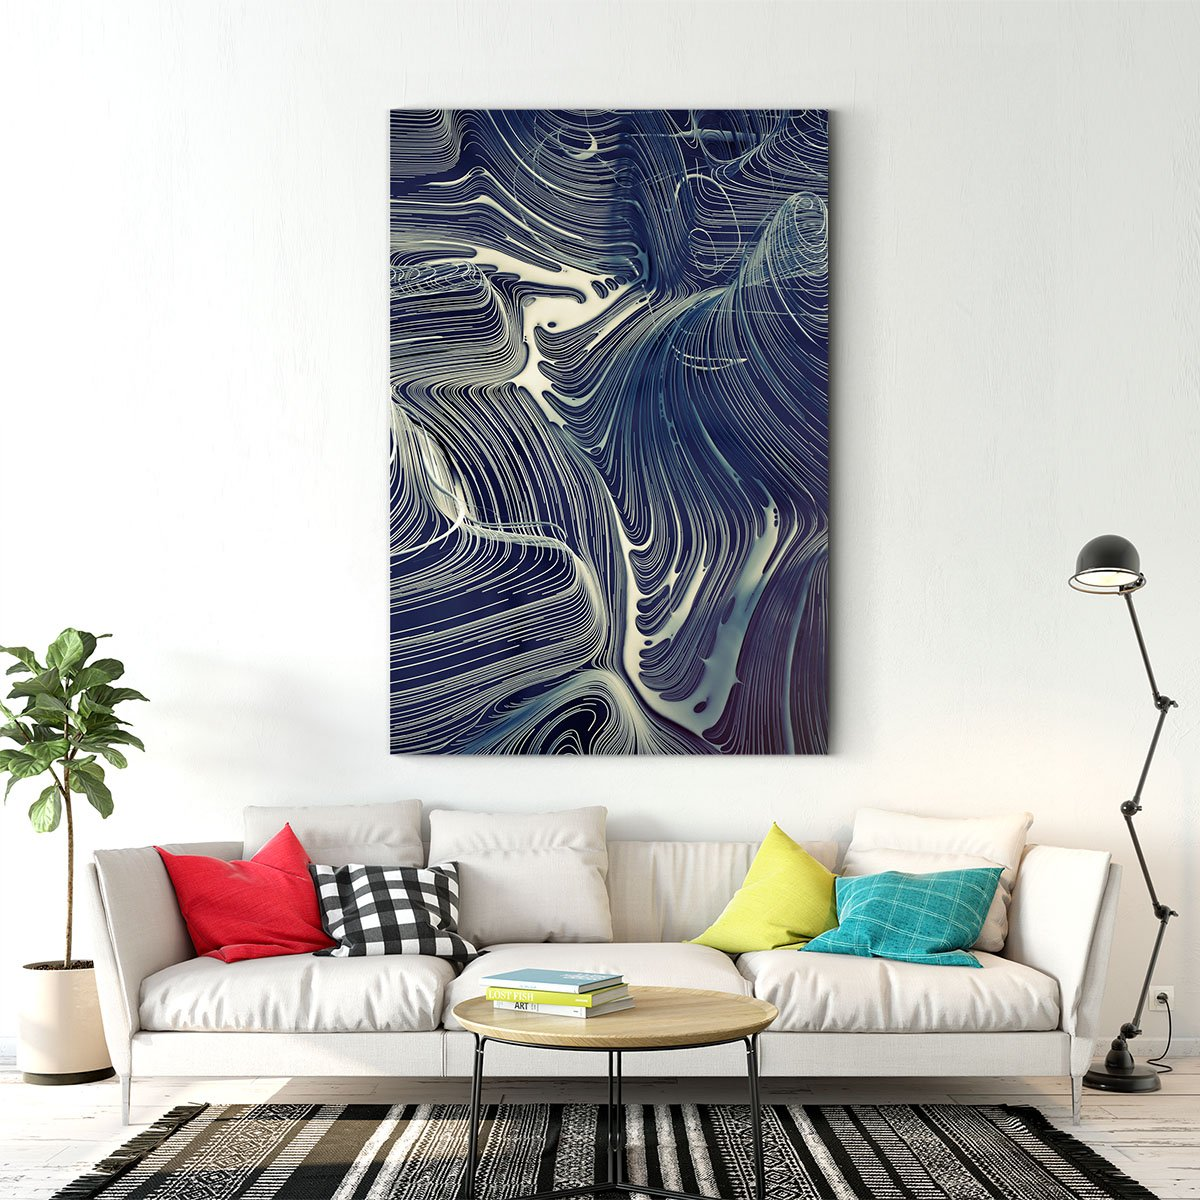 Elegant lines abstract decorative painting 009